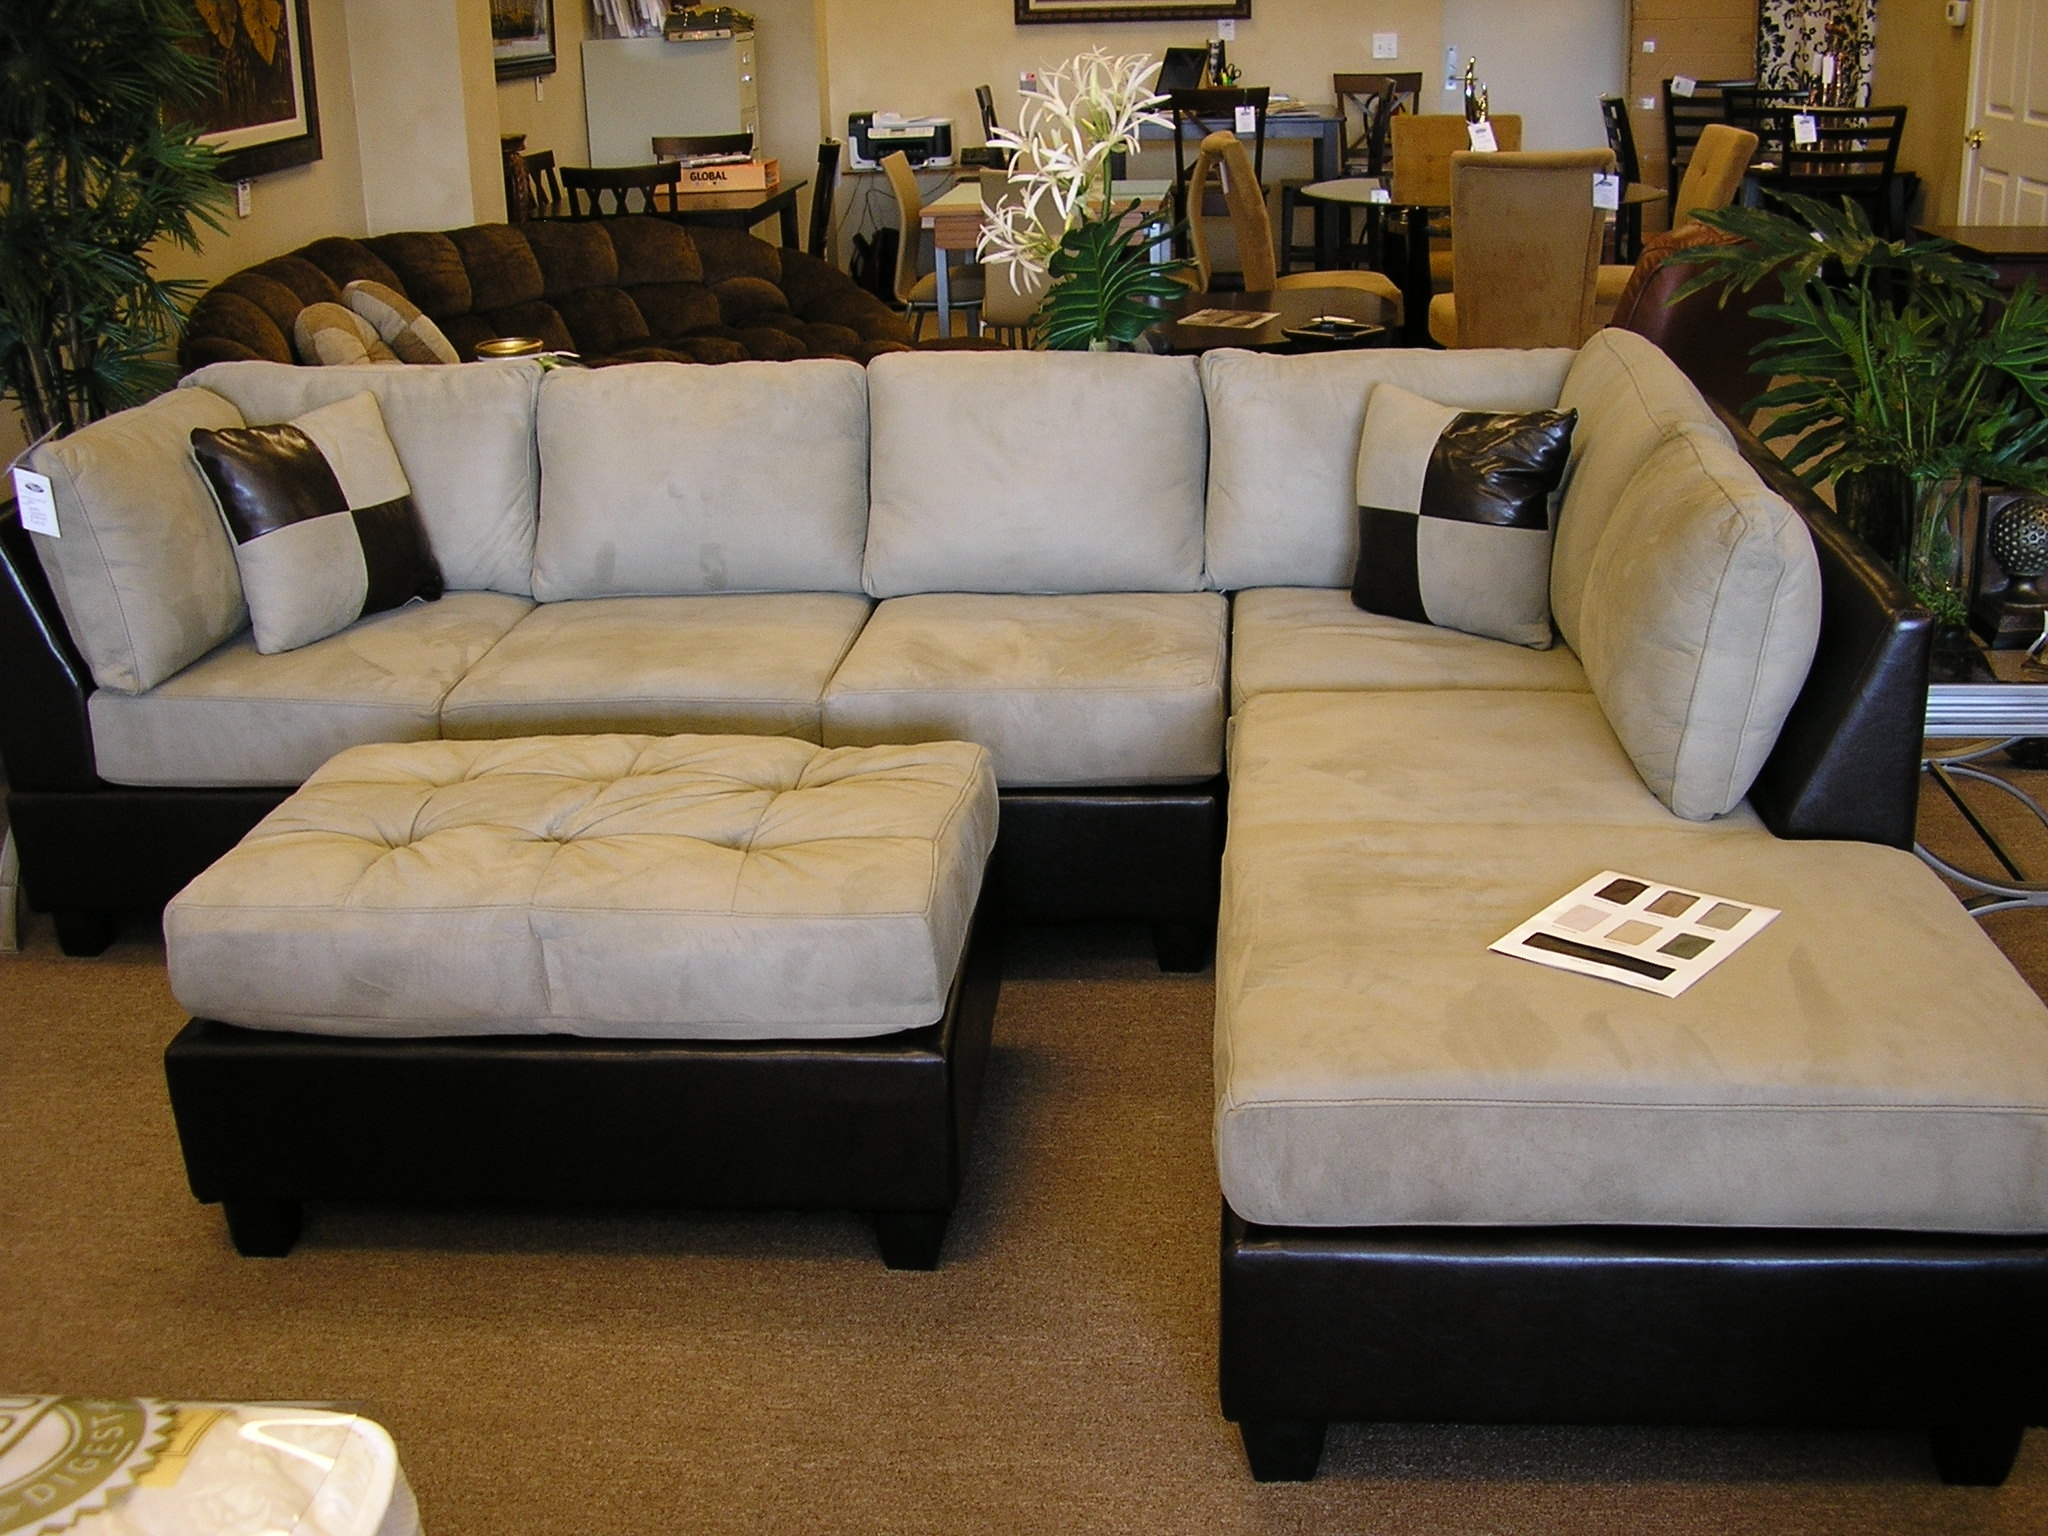 Uncategorized : Sectional Ottoman Set Ideas For Lovely Sofa 3 Pertaining To Sofas With Chaise And Ottoman (View 8 of 10)